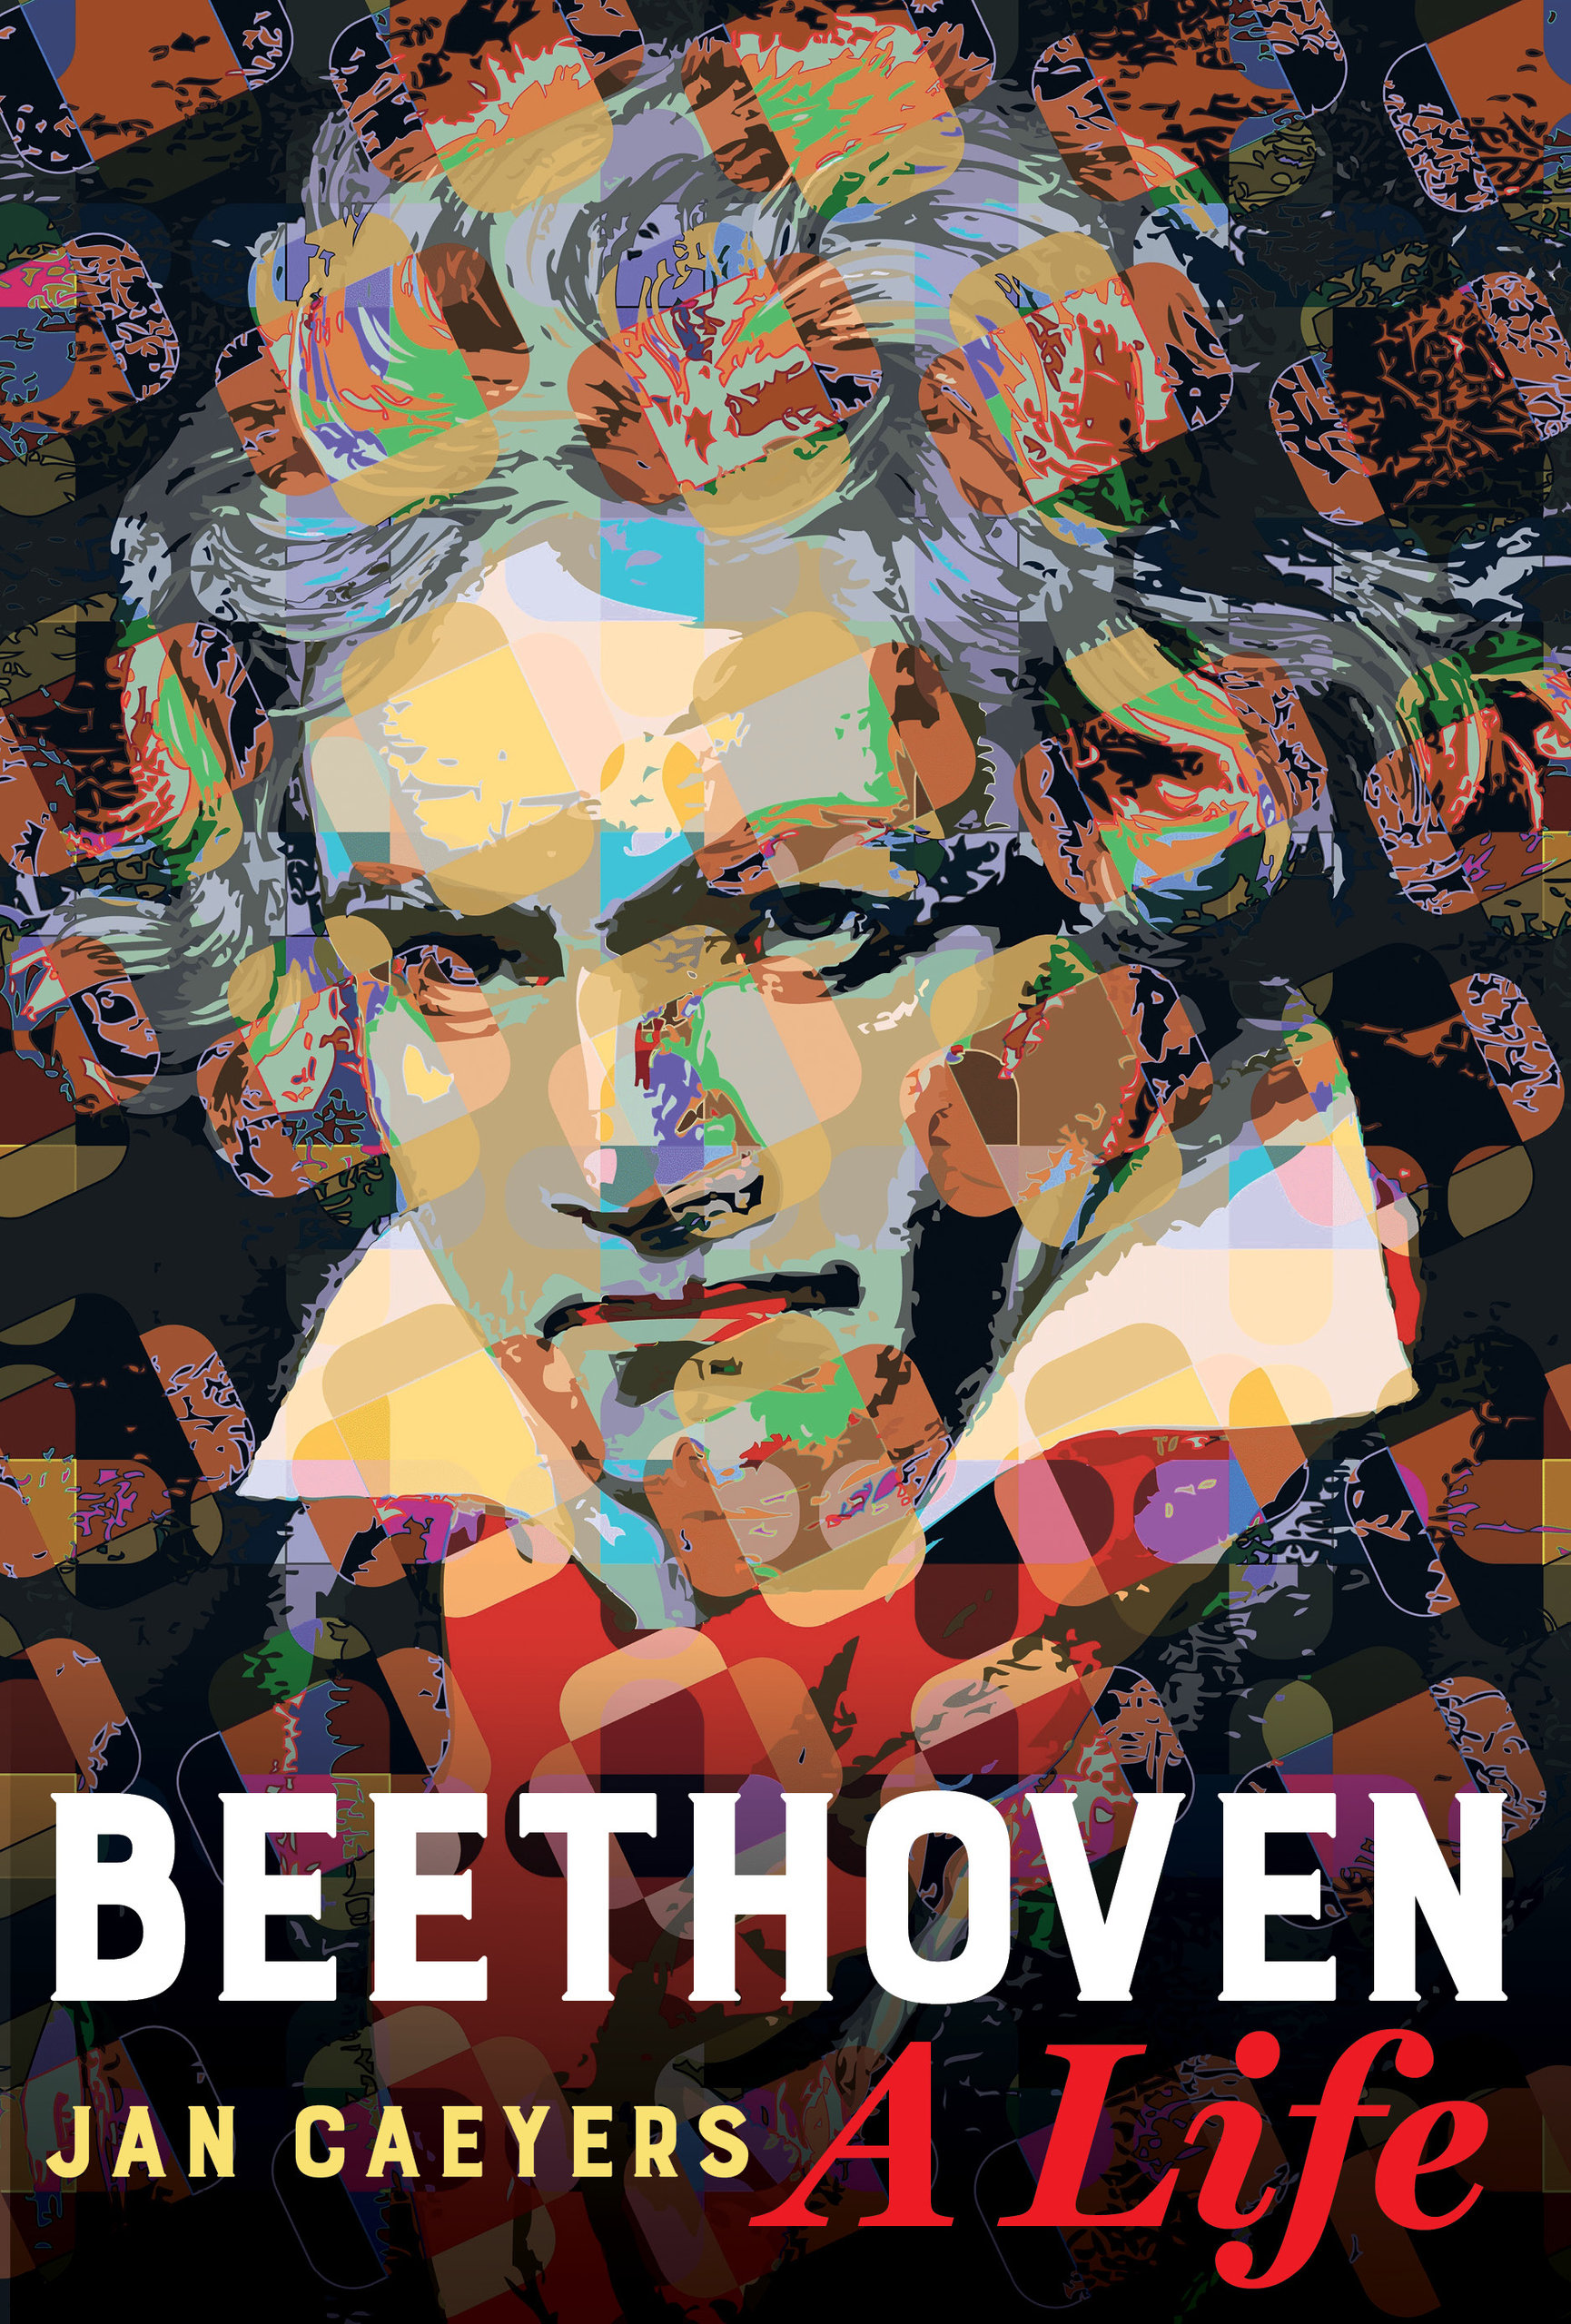 Beethoven, A Life. Celebrate the 250th anniversary of Beethoven's birth